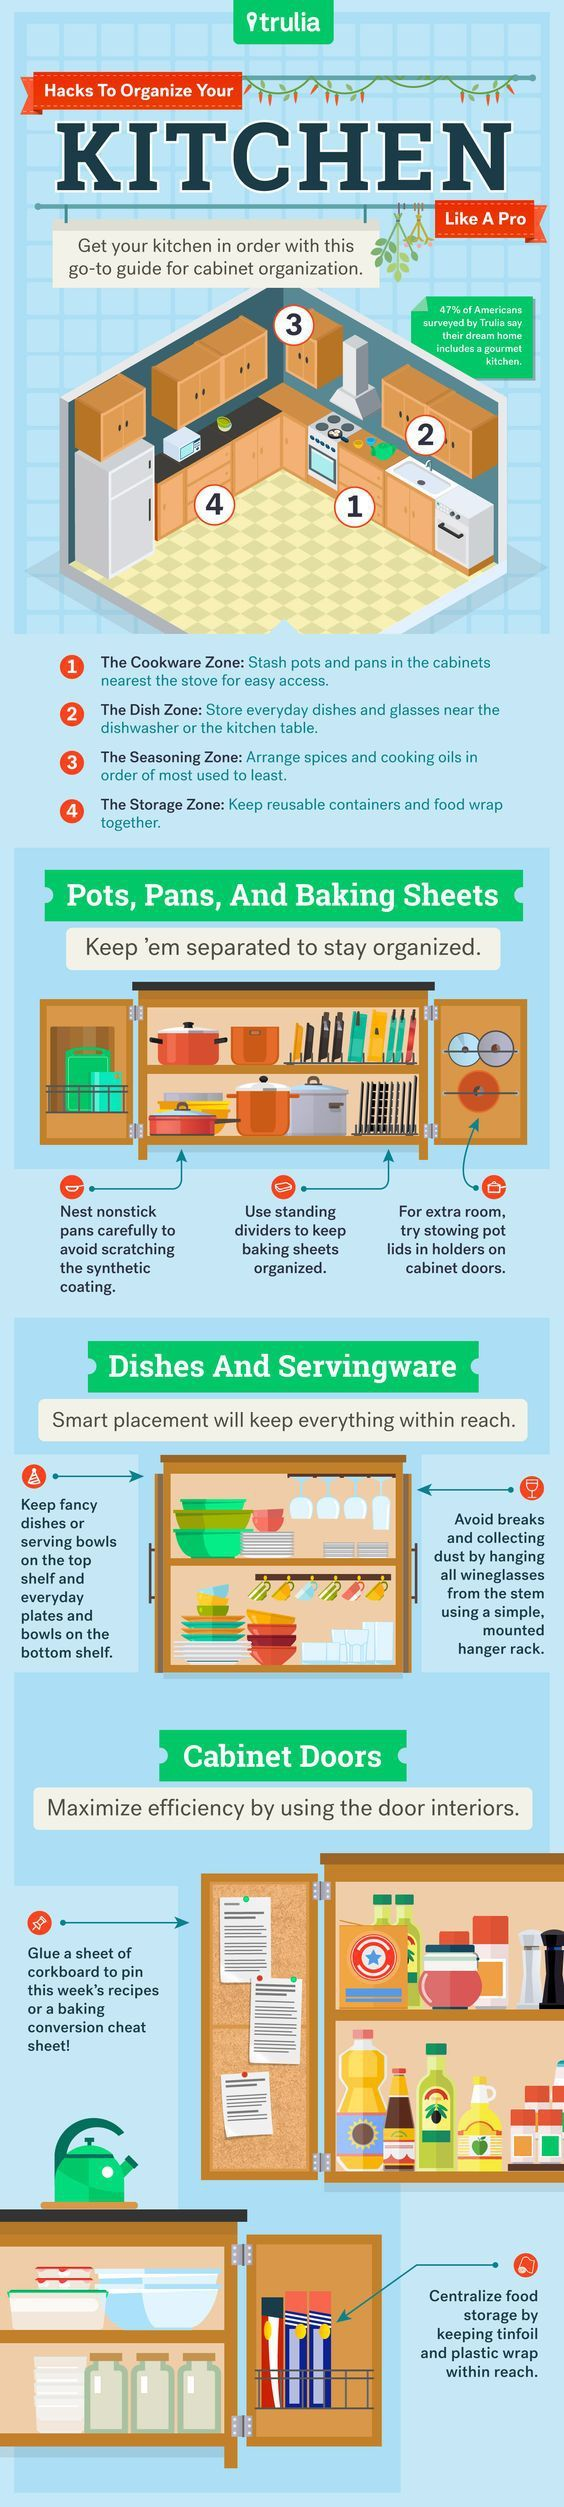 Sink and dishwasher at the end of the counter. Take the wall between the kitchen and dining room out.